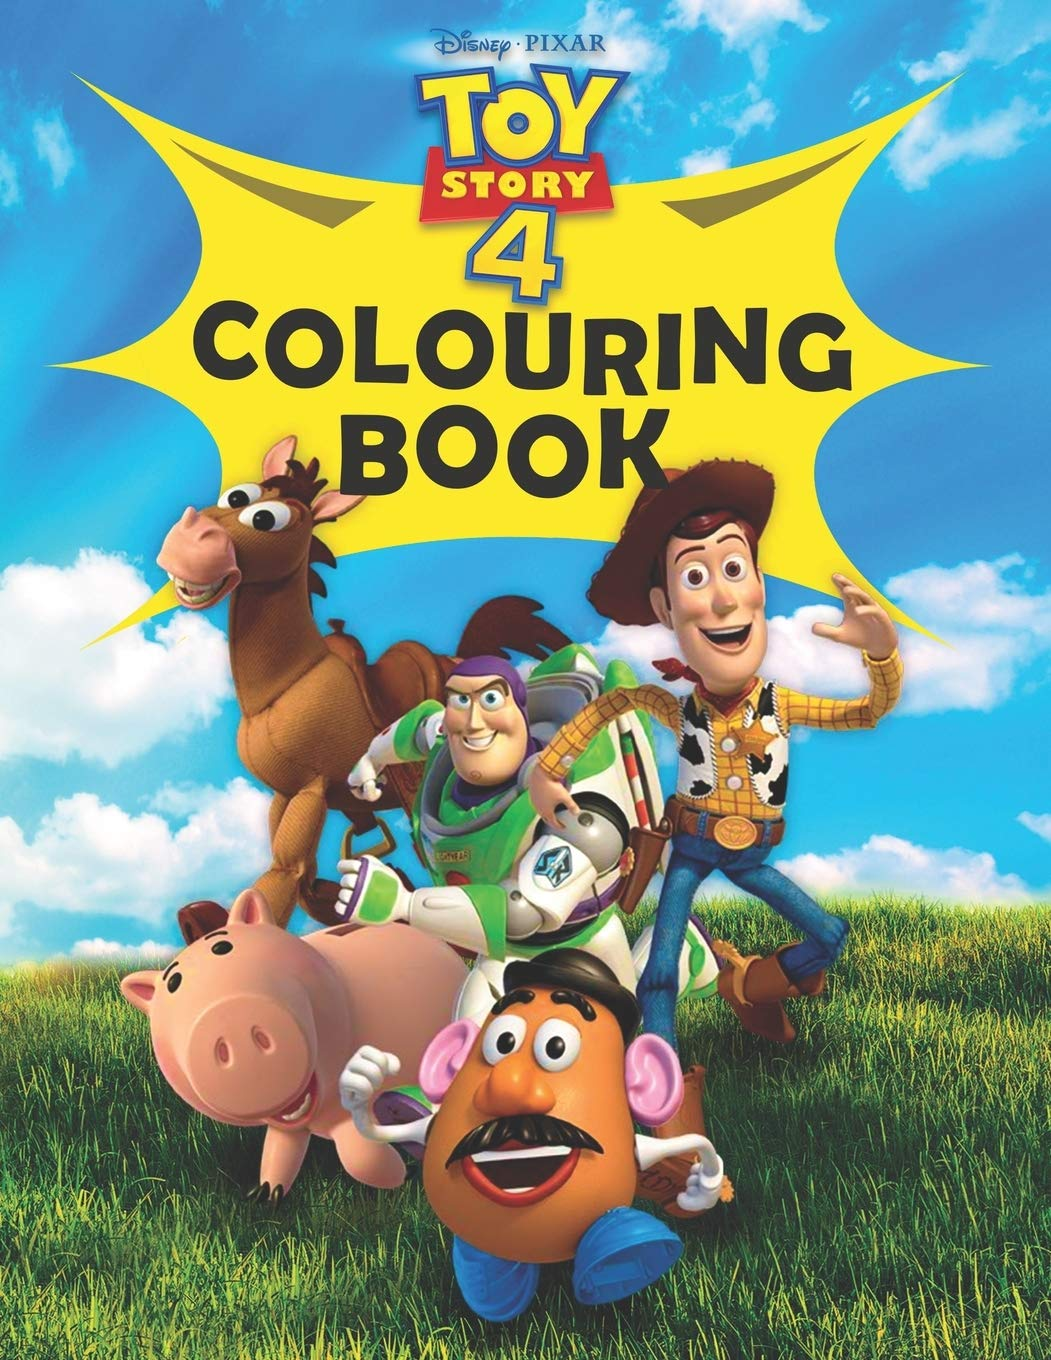 Disney Pixar Toy Story 4 Colouring Book: The Ultimate Toy Story 4 Colouring Book (Mammoth Colouring)